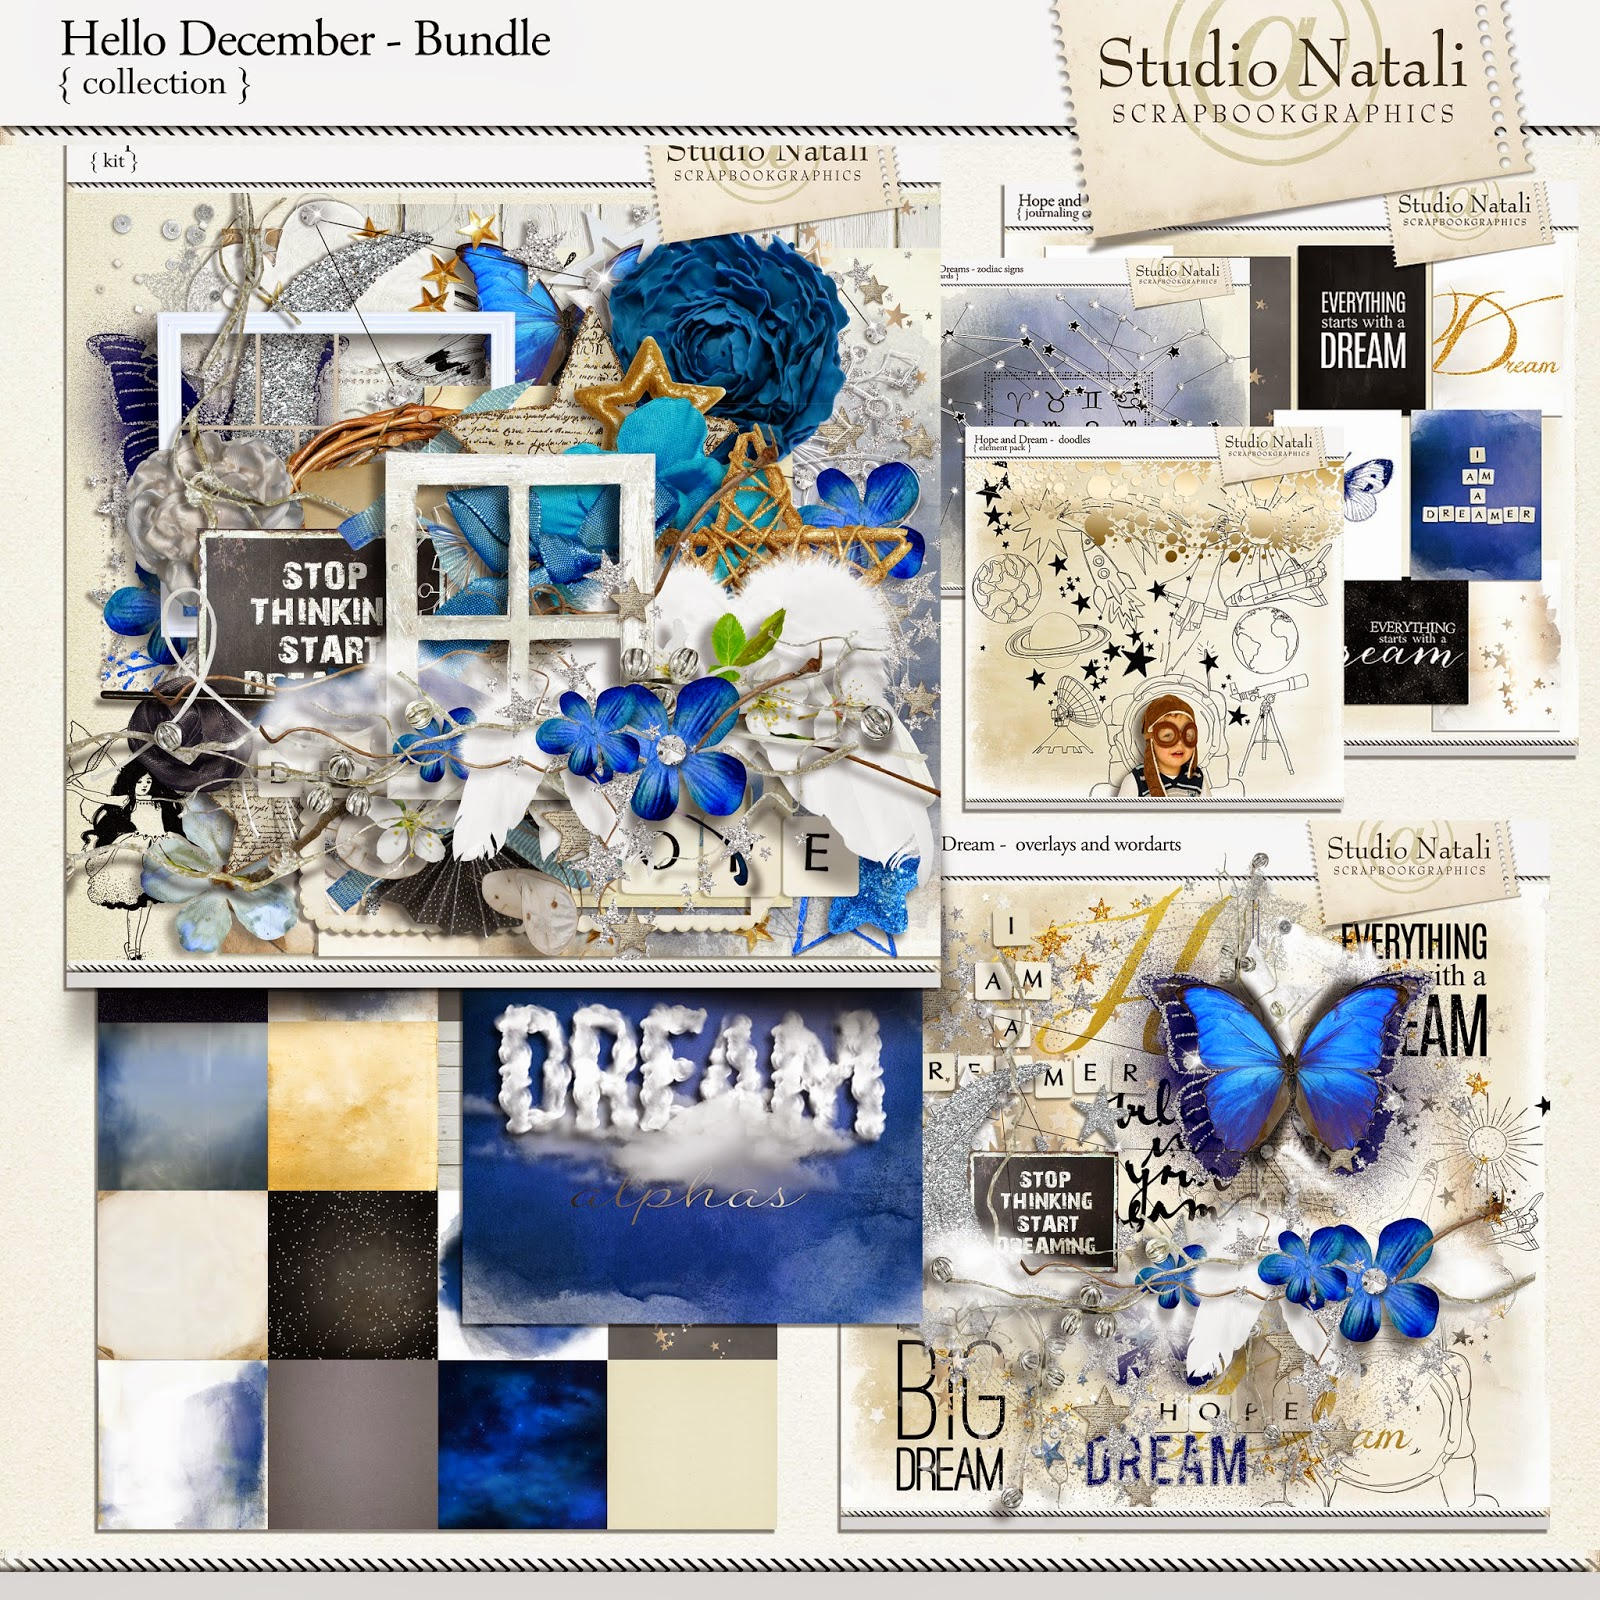 http://shop.scrapbookgraphics.com/Hope-and-Dream-Bundle.html